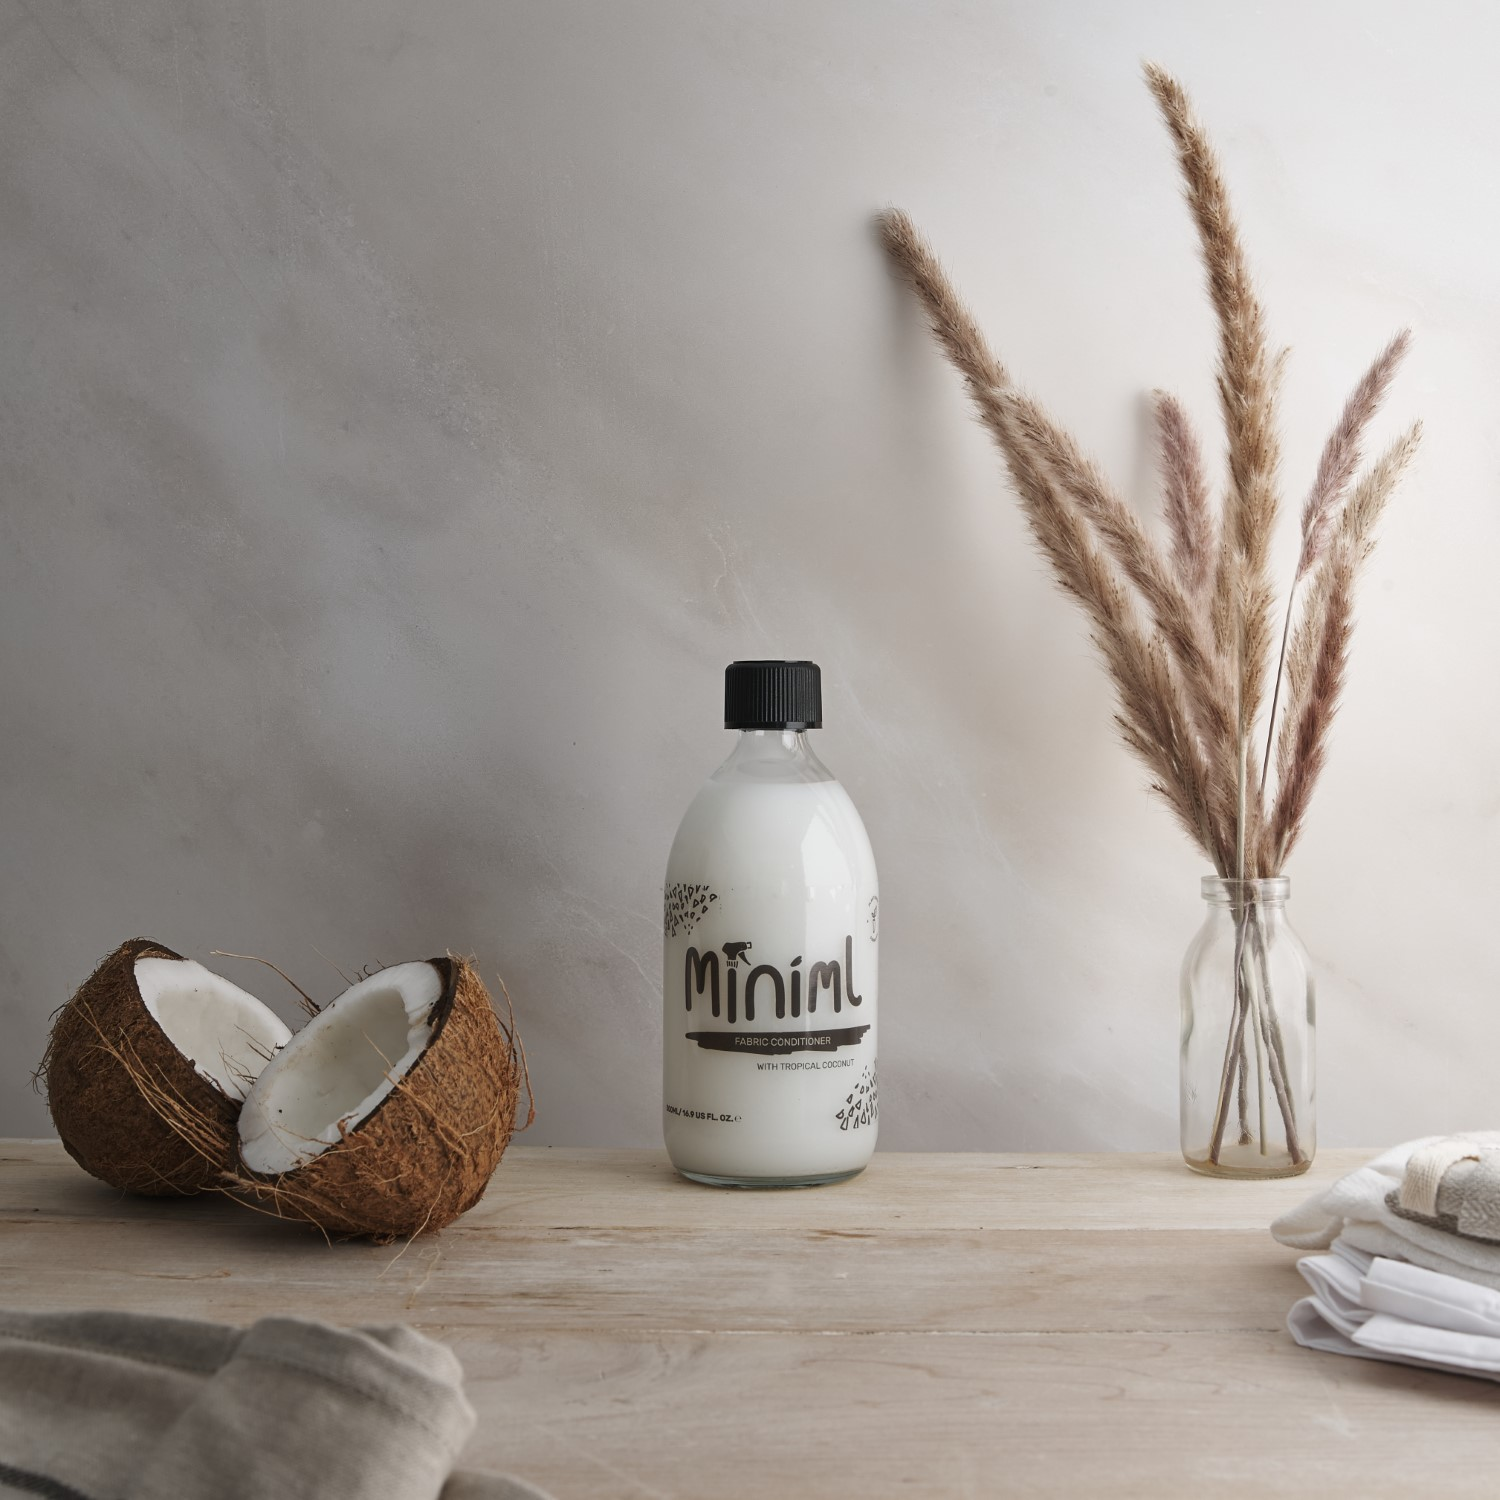 An apothecary type product photograph demonstrating the use of marble stone backdrop